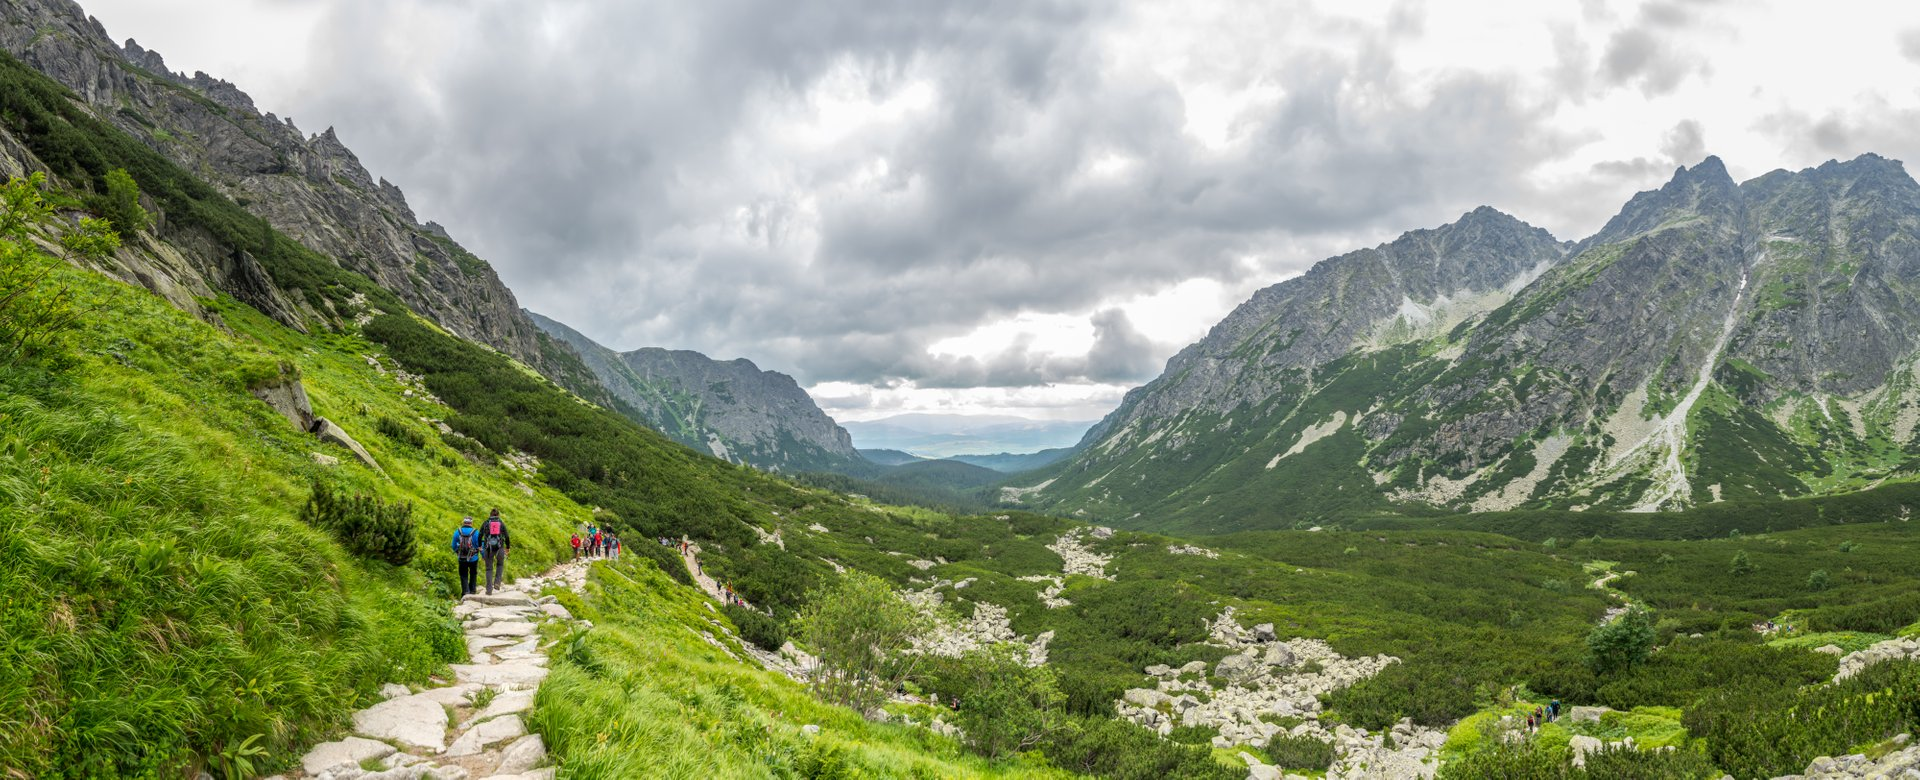 Best time to see Hiking in the Tatra Mountains in Slovakia 2020